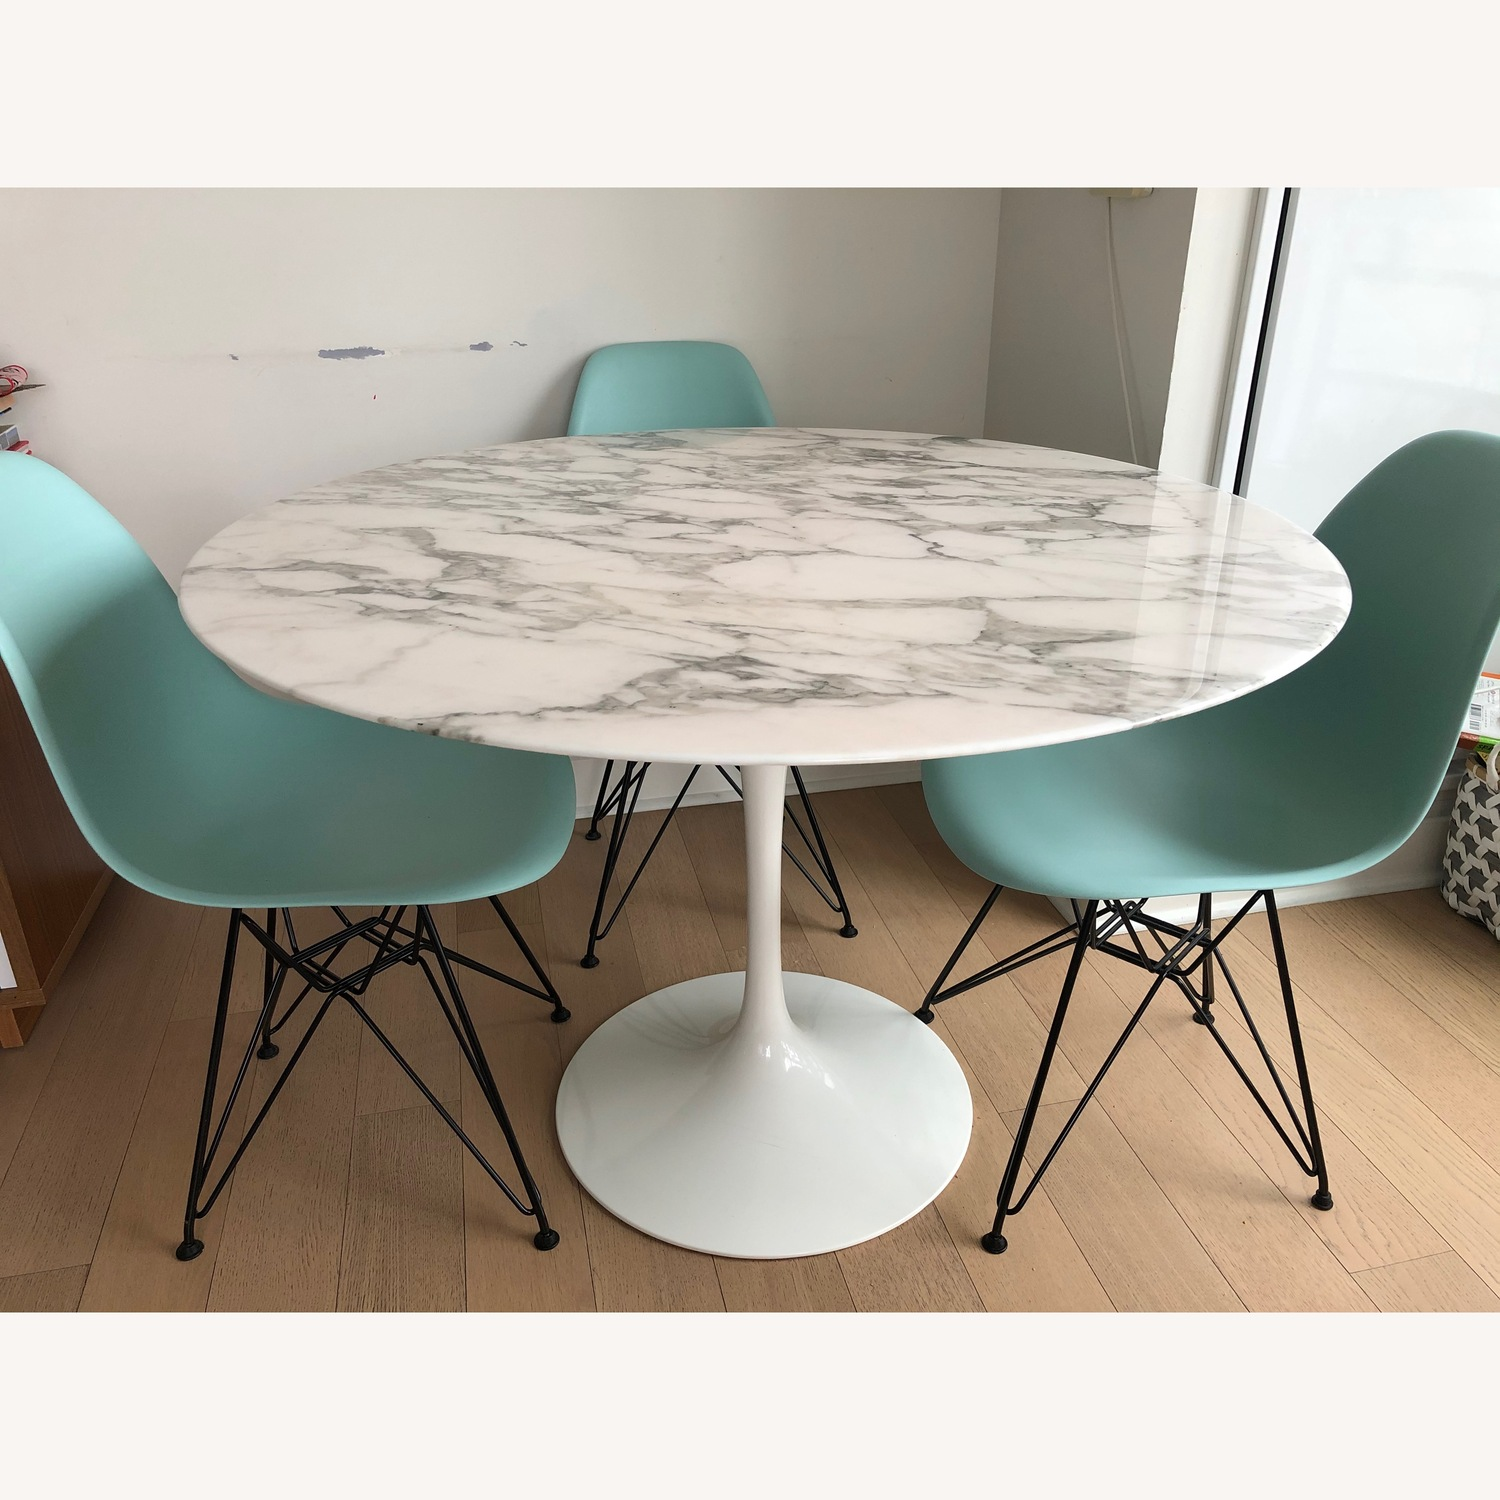 Aqua Sky Dinning Chair by Eames - image-3